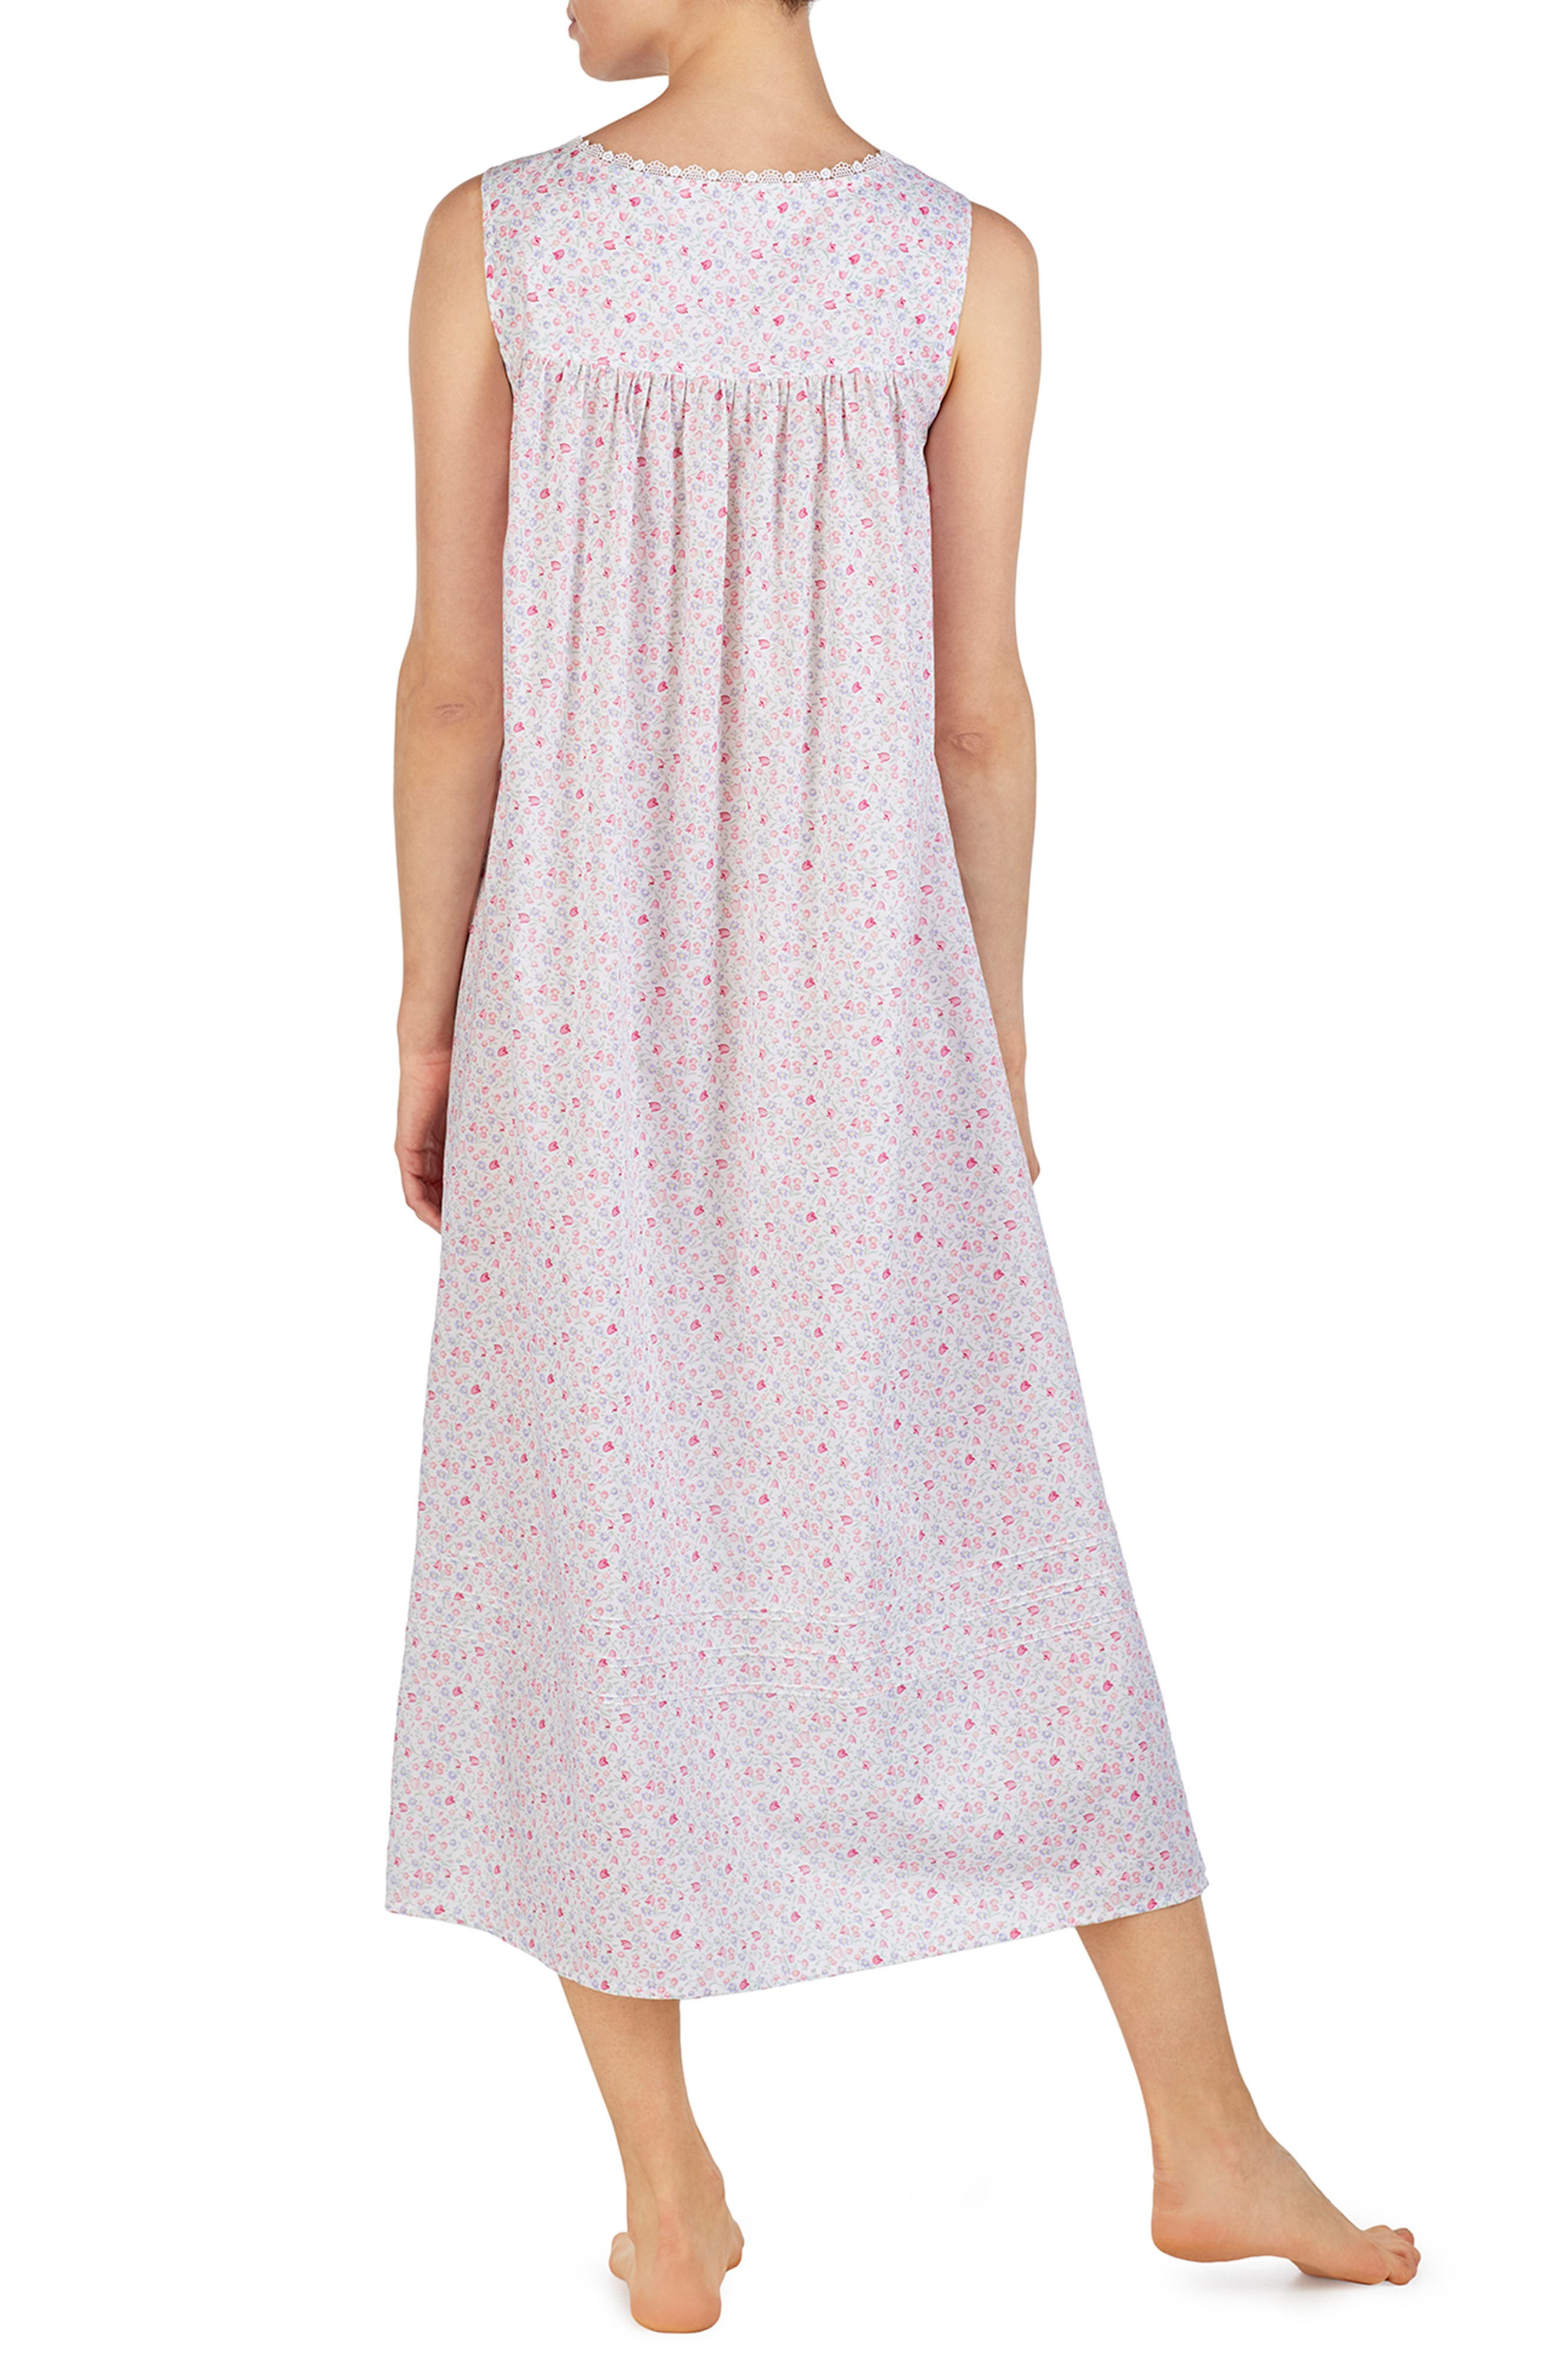 EILEEN WEST,                             Cotton Lawn Nightgown,                             Alternate thumbnail 2, color,                             MULTI DITSY